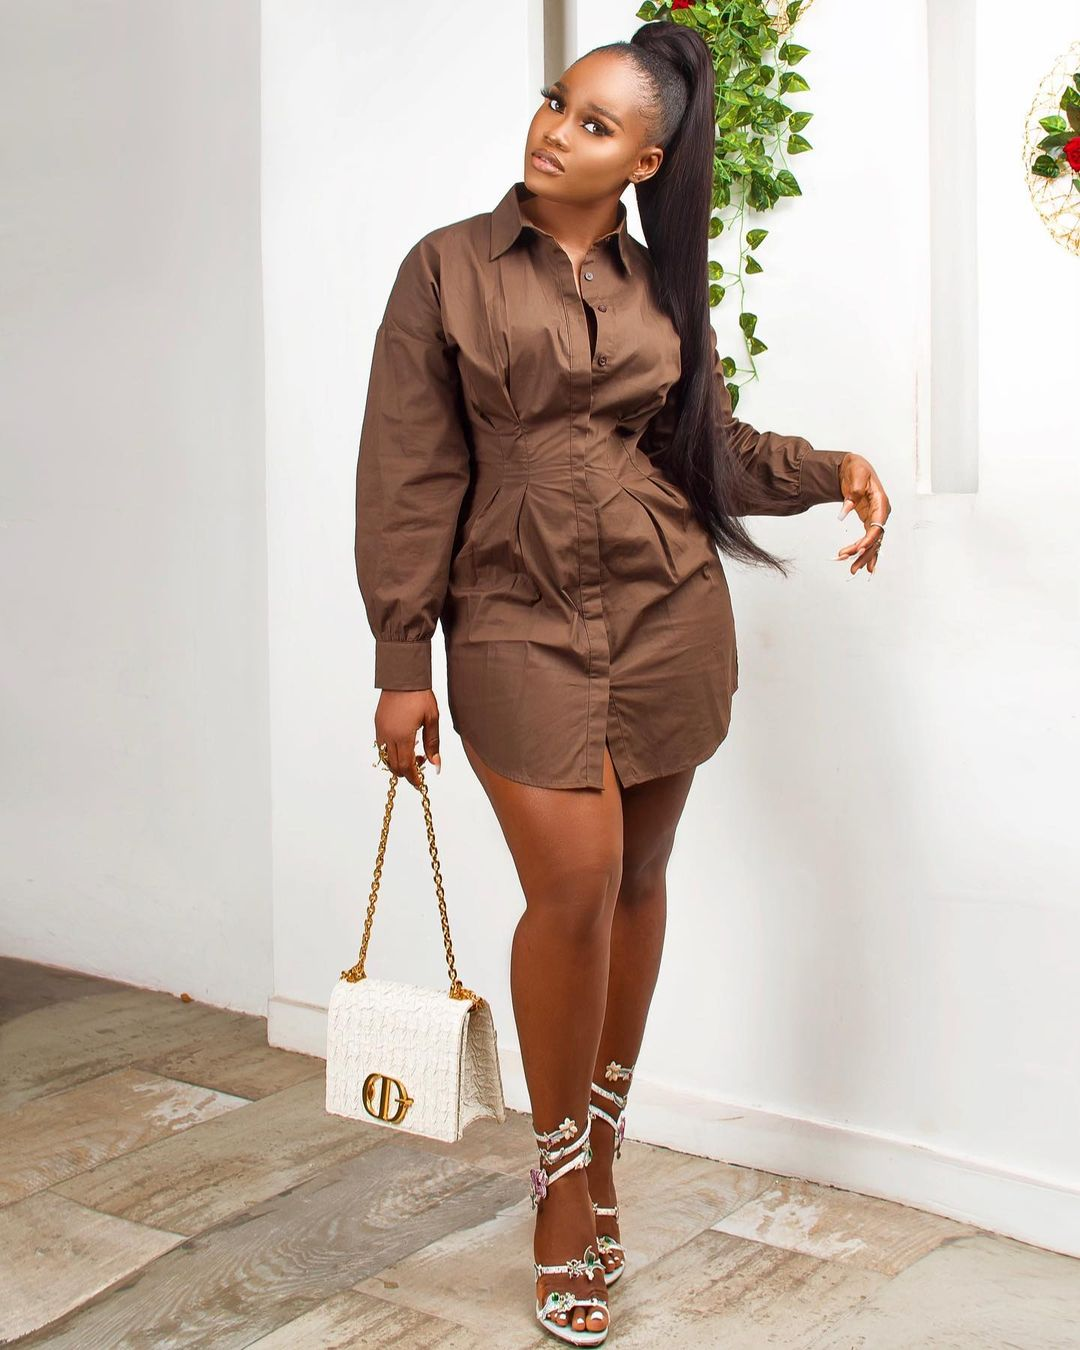 Cynthia Nwadiora long Sleeves Shirt Dress Keeps The Sass In Check